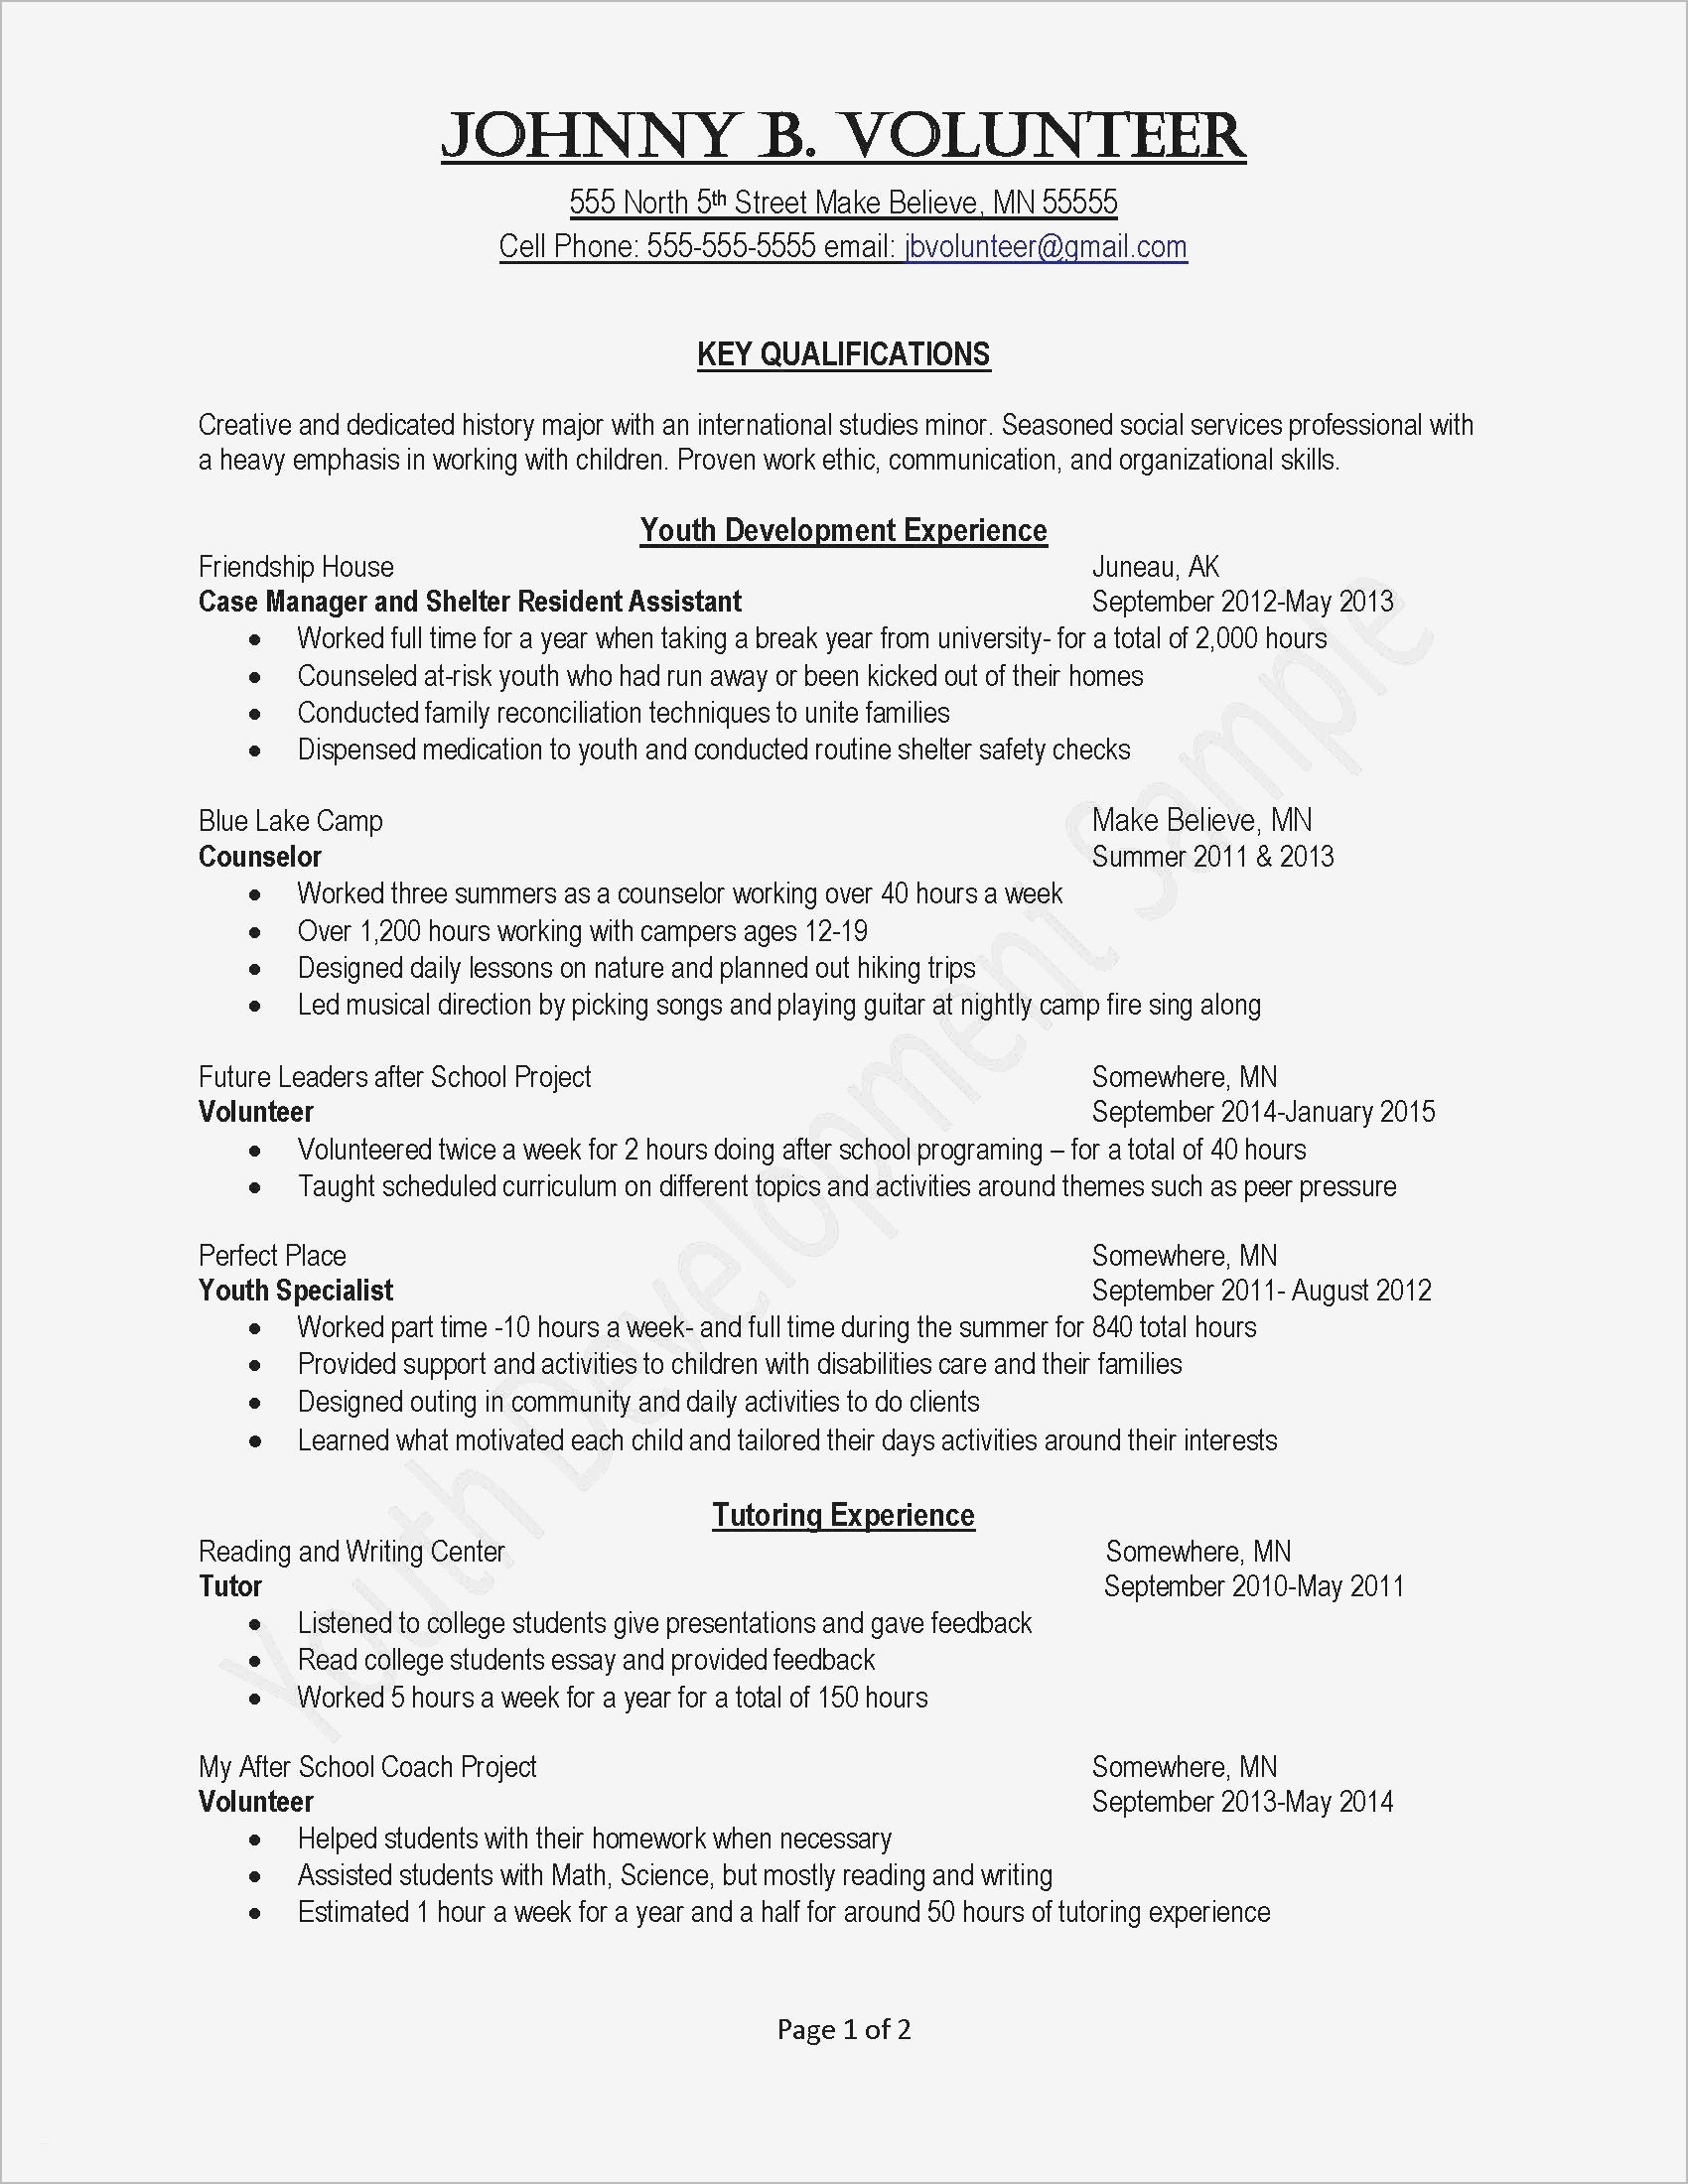 Stand Out Cover Letter Template - Resume Template that Stands Out Unique Job Fer Letter Template Us